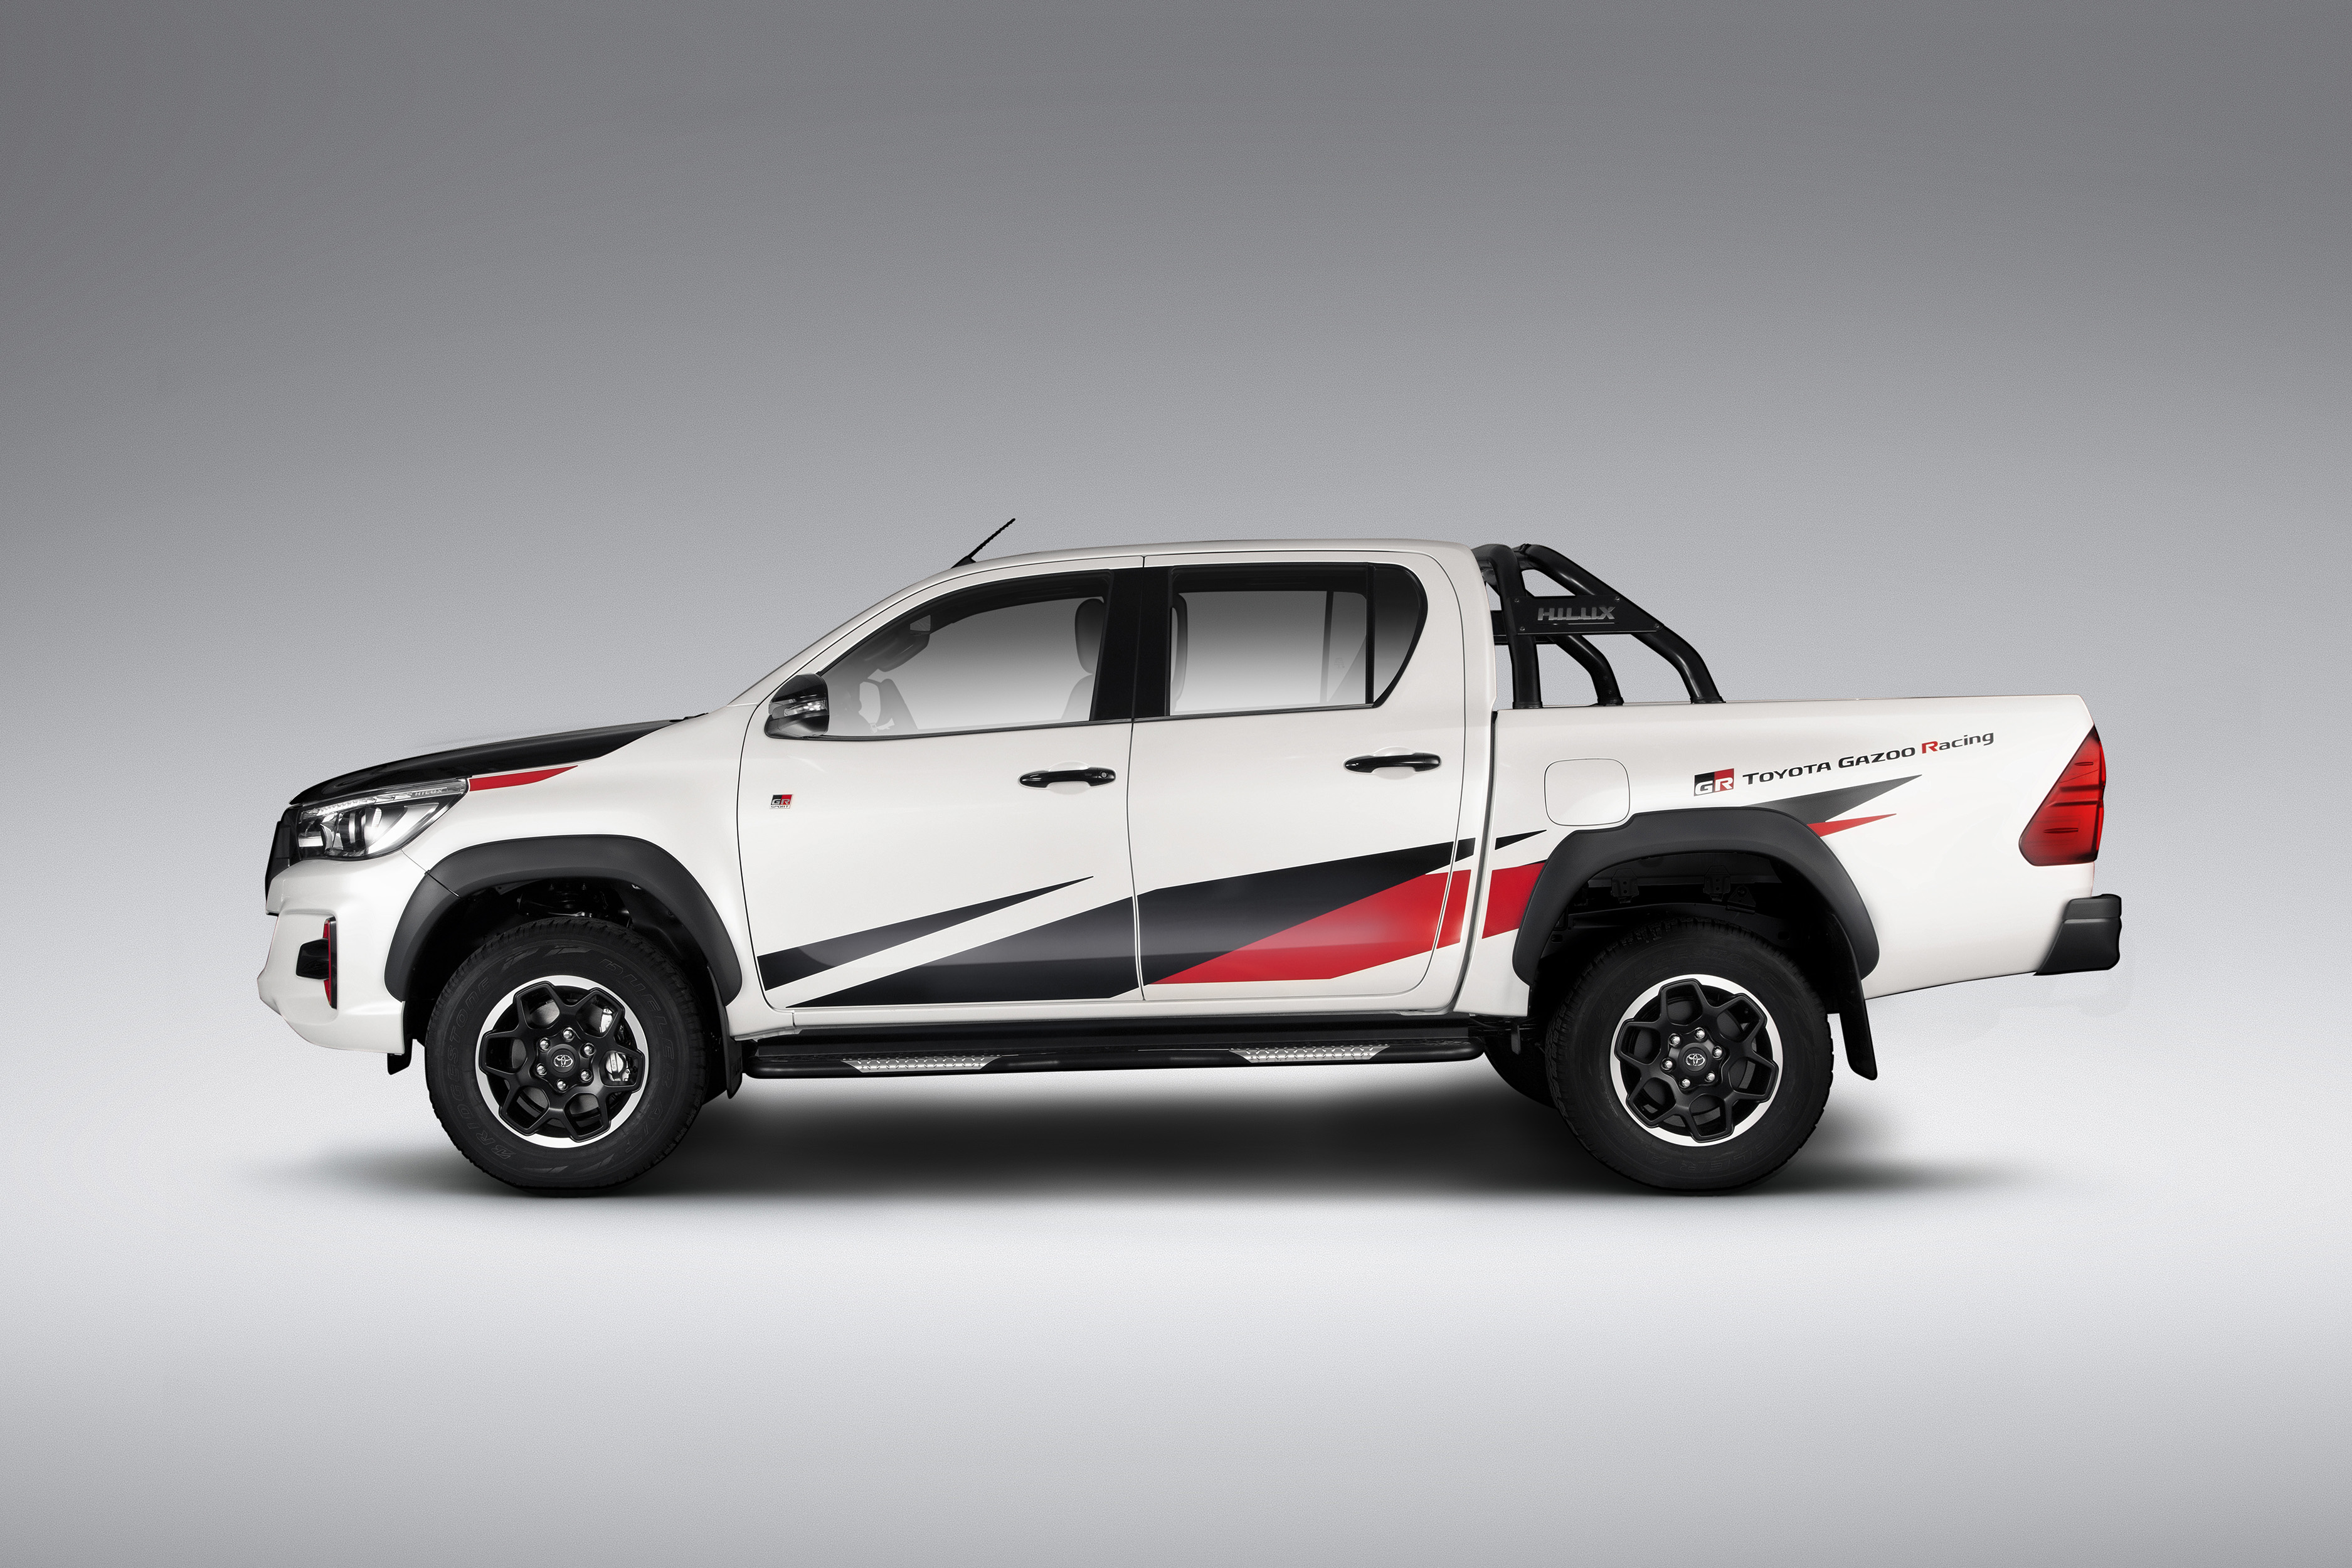 2019 Toyota Hilux GR Sport Doesn't Look Half Bad